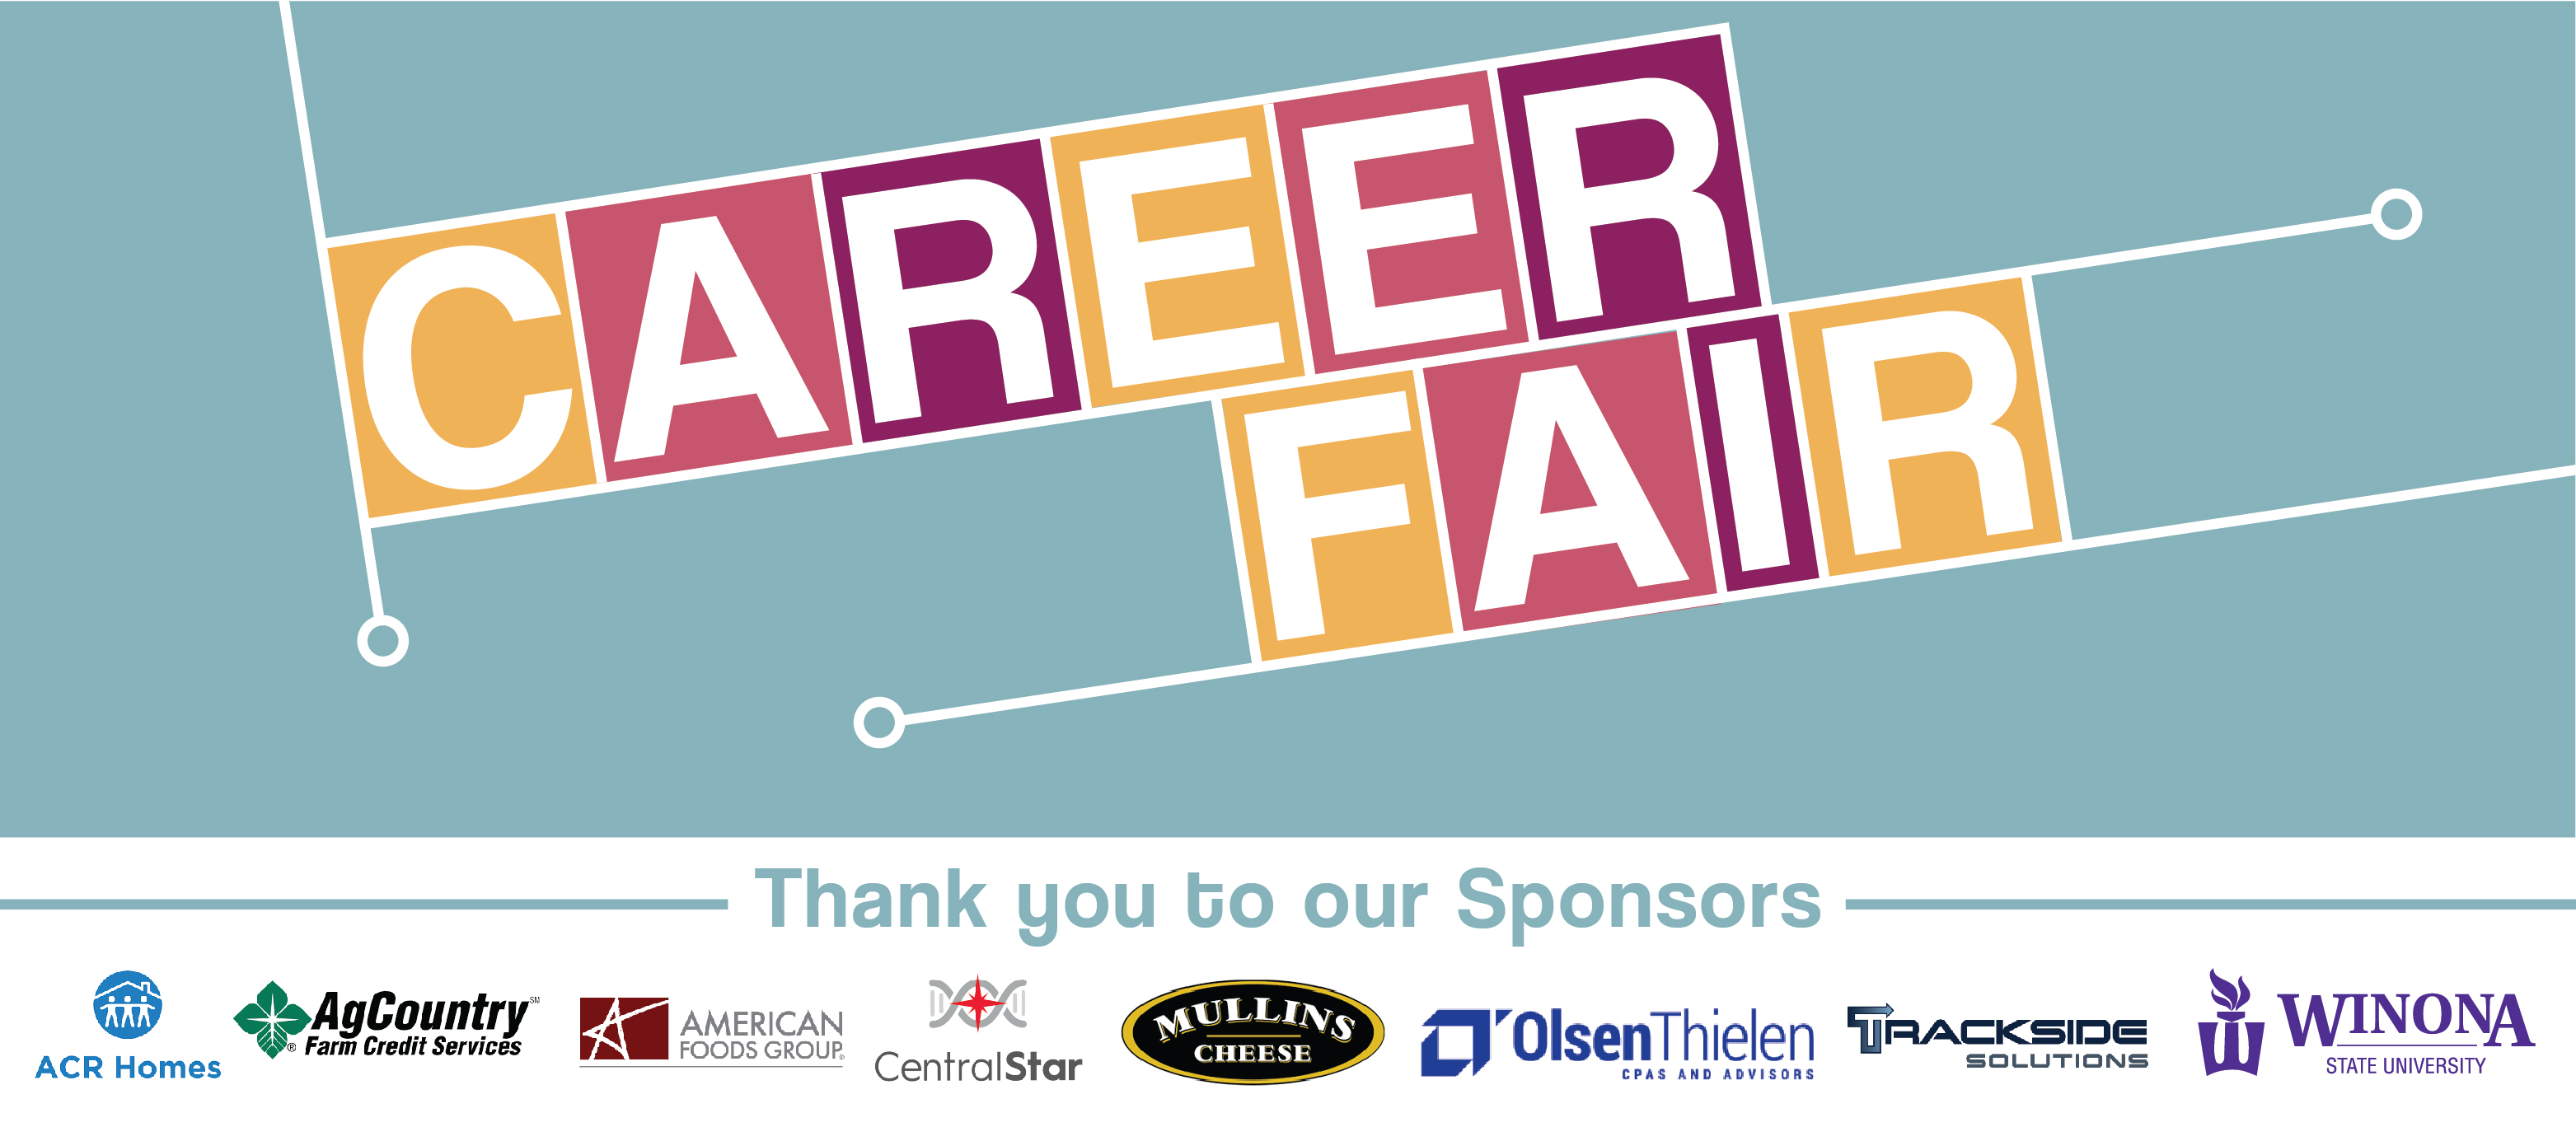 20-0191 Virtual Career Fair_Web Banner_Sponsors